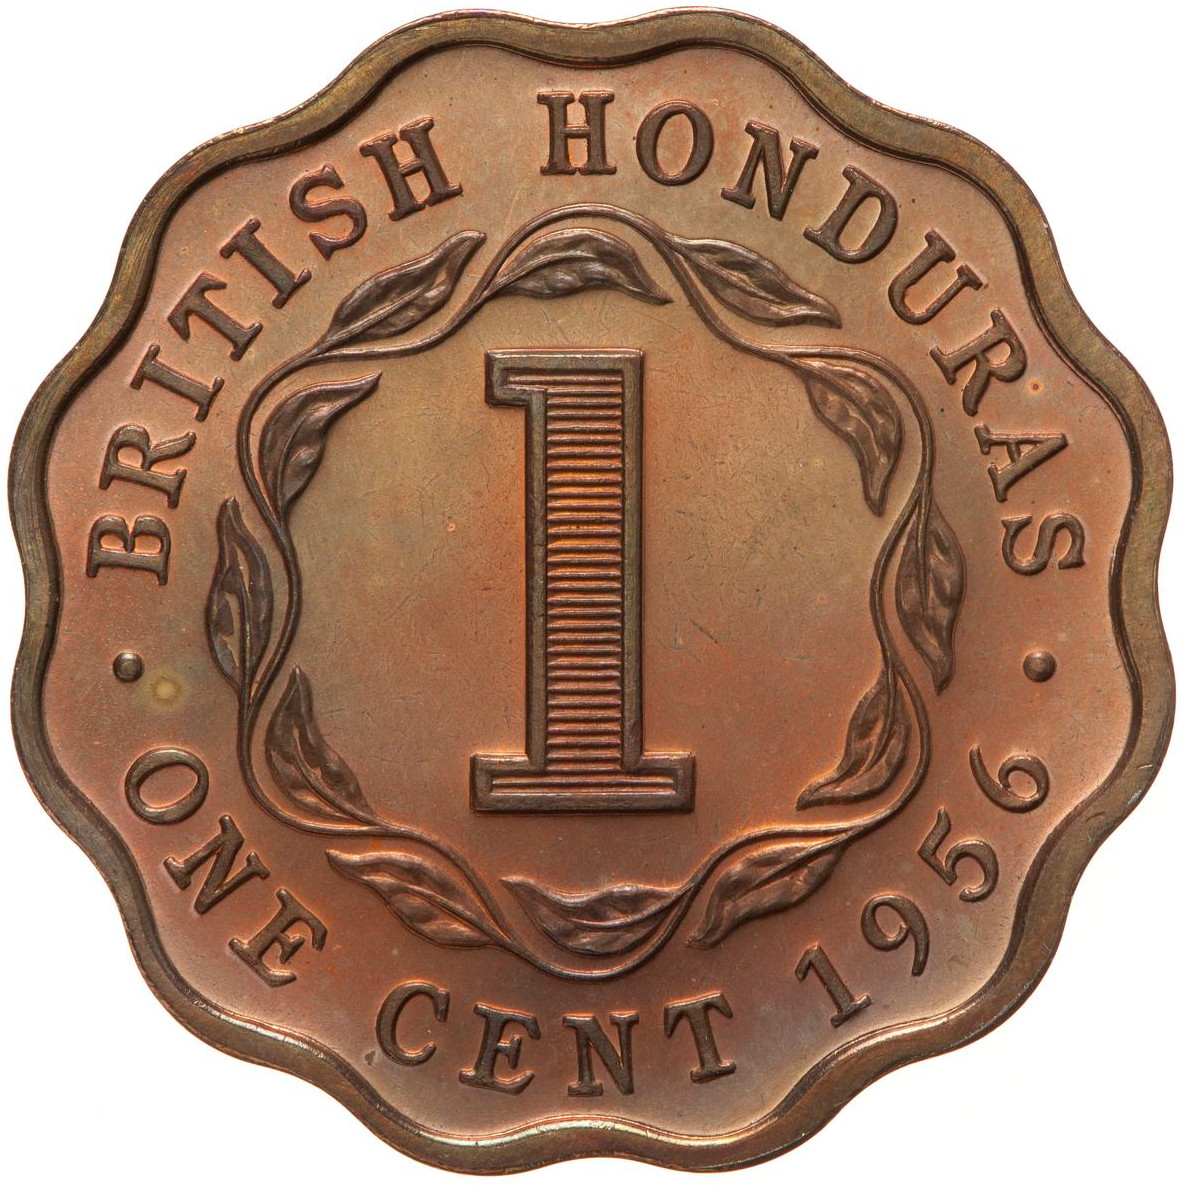 One Cent: Photo Proof Coin - 1 Cent, British Honduras (Belize), 1956